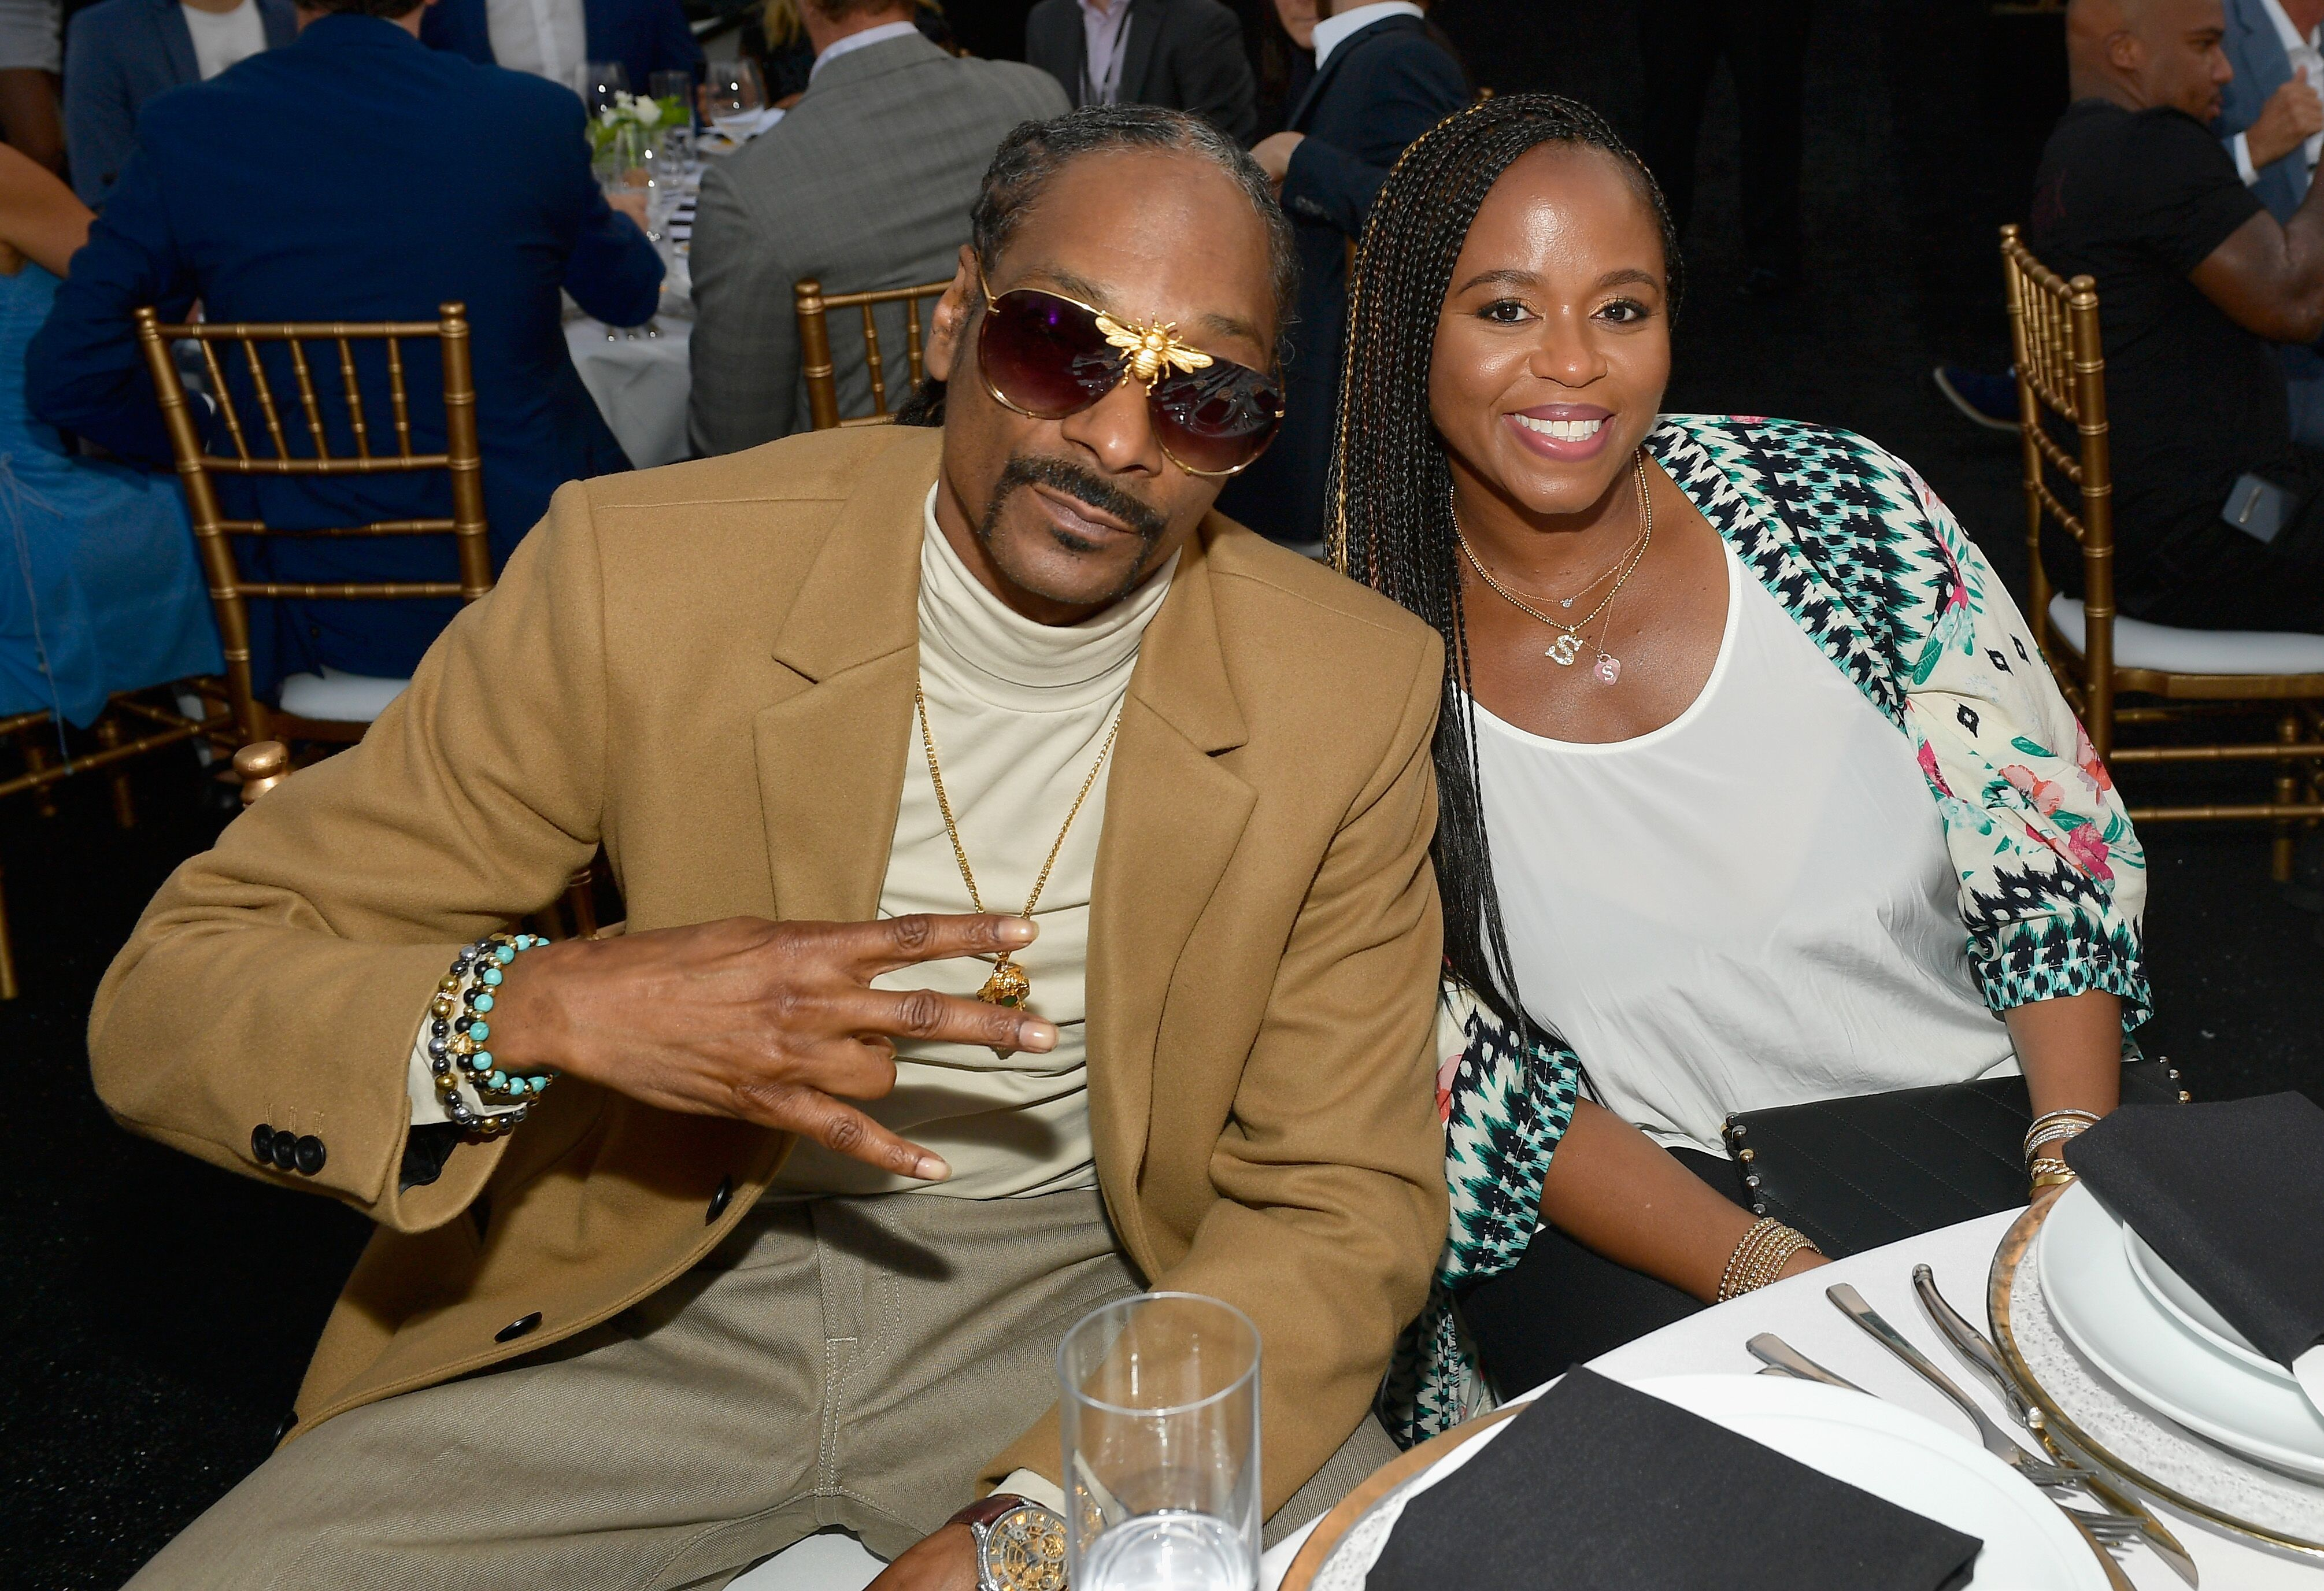 Snoop Dogg and Shante Broadus attend the 33rd Annual Cedars-Sinai Sports Spectacular at The Compound on July 15, 2018 | Photo: Getty Images